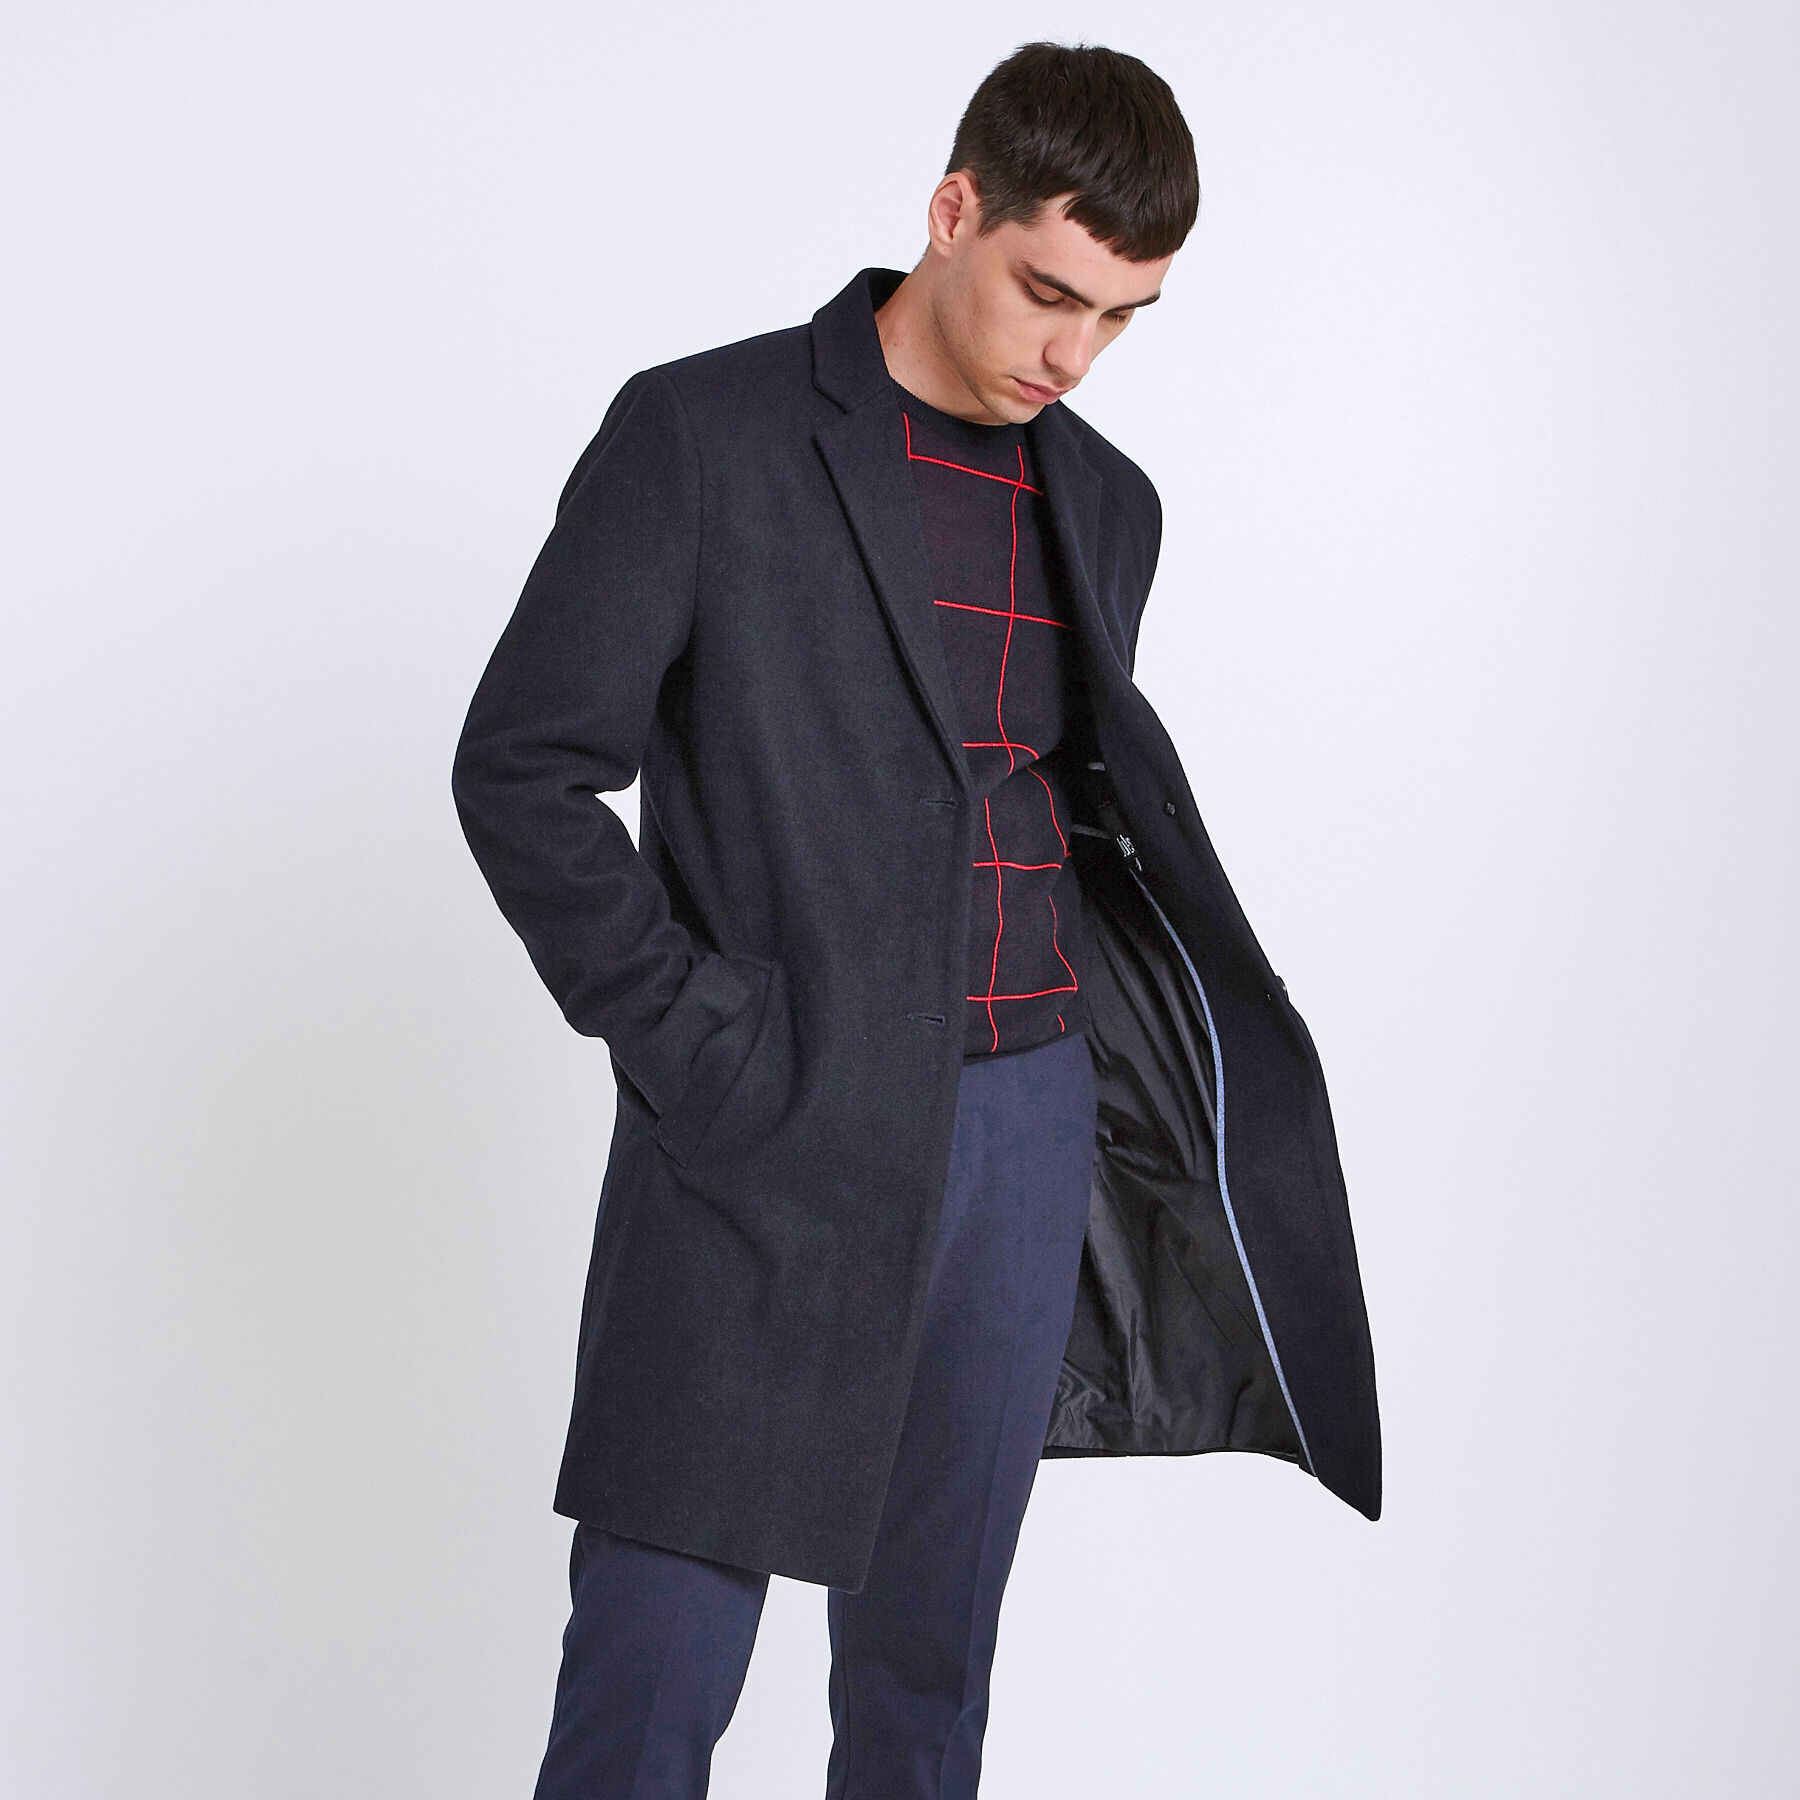 Cappotto Jules Giacca Caban Uomo Trench Uomo wSPqpYw